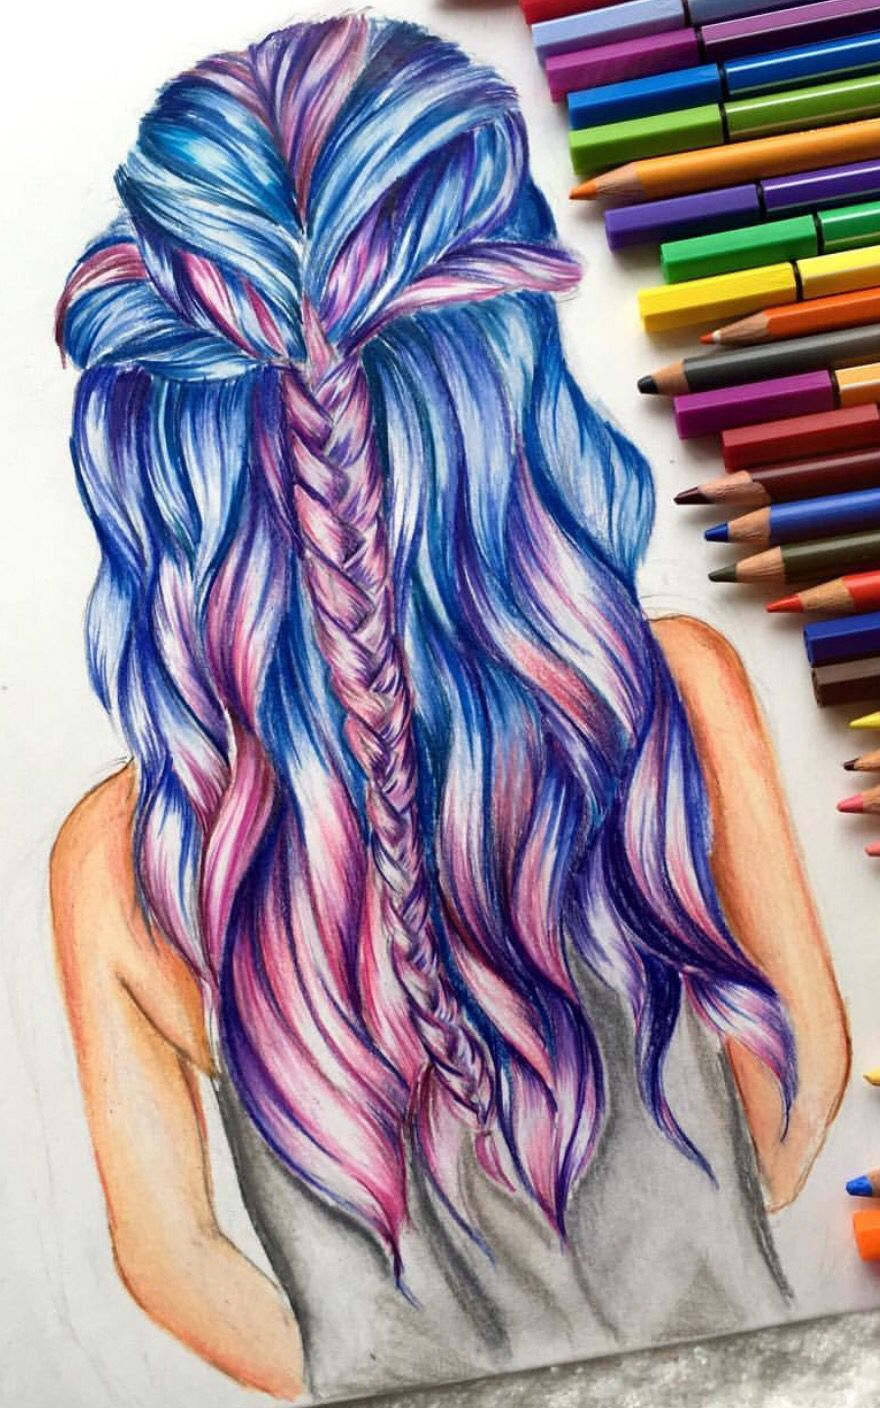 Pin By Aya On Aya Colorful Drawings How To Draw Hair Cool Drawings